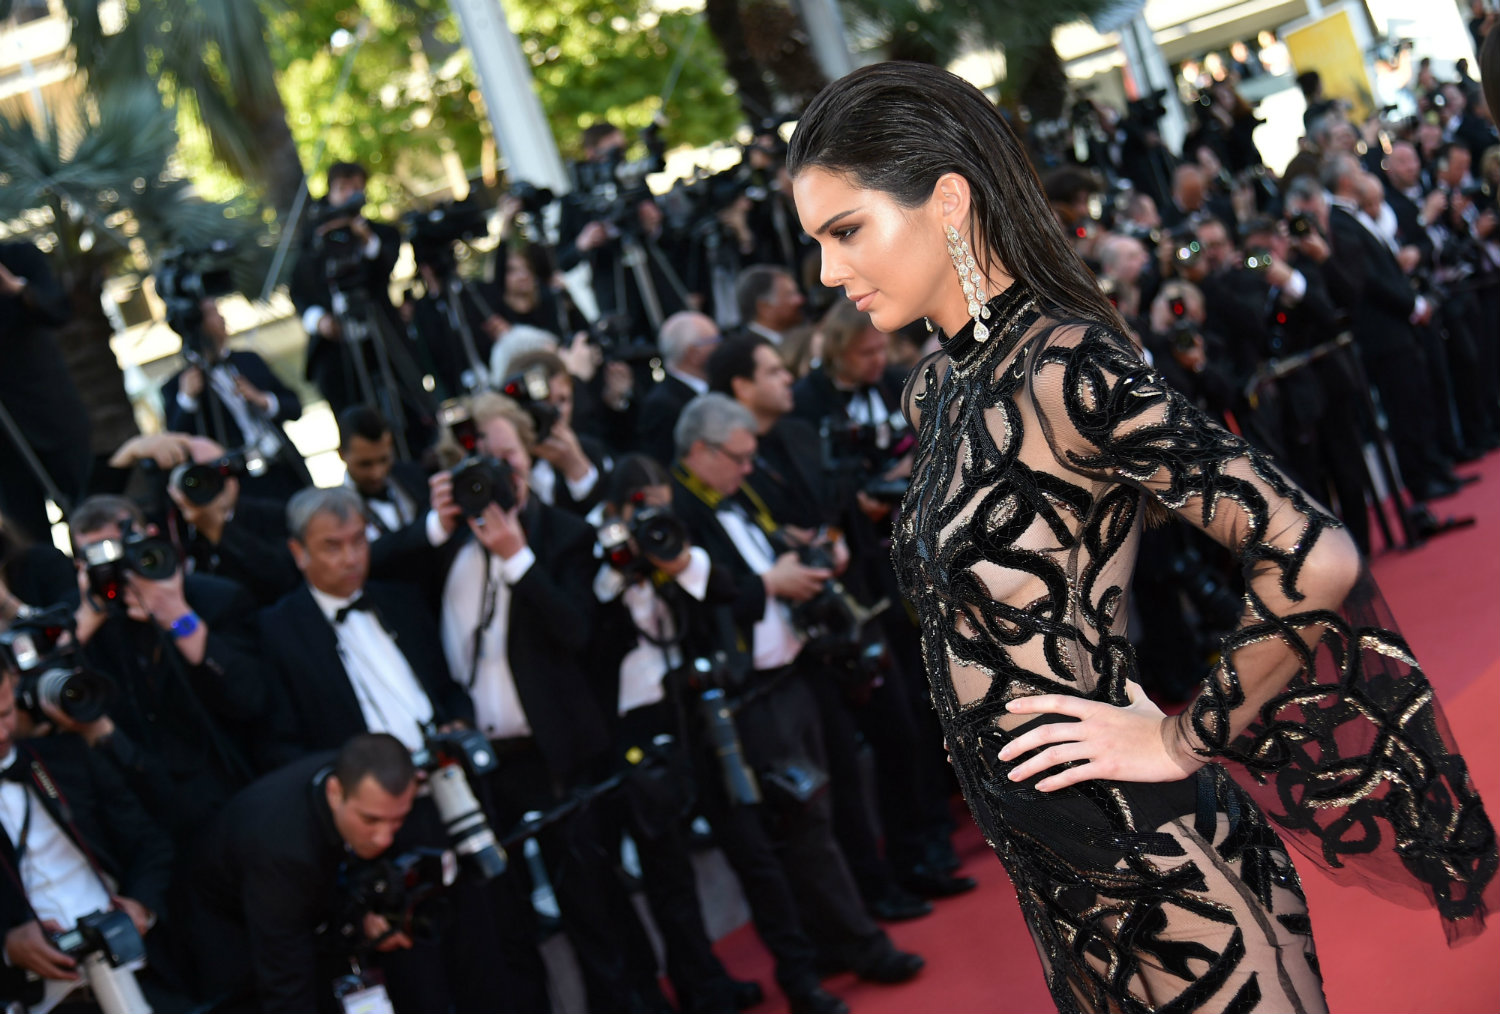 Kendall Jenner hairstyles from Cannes 2016